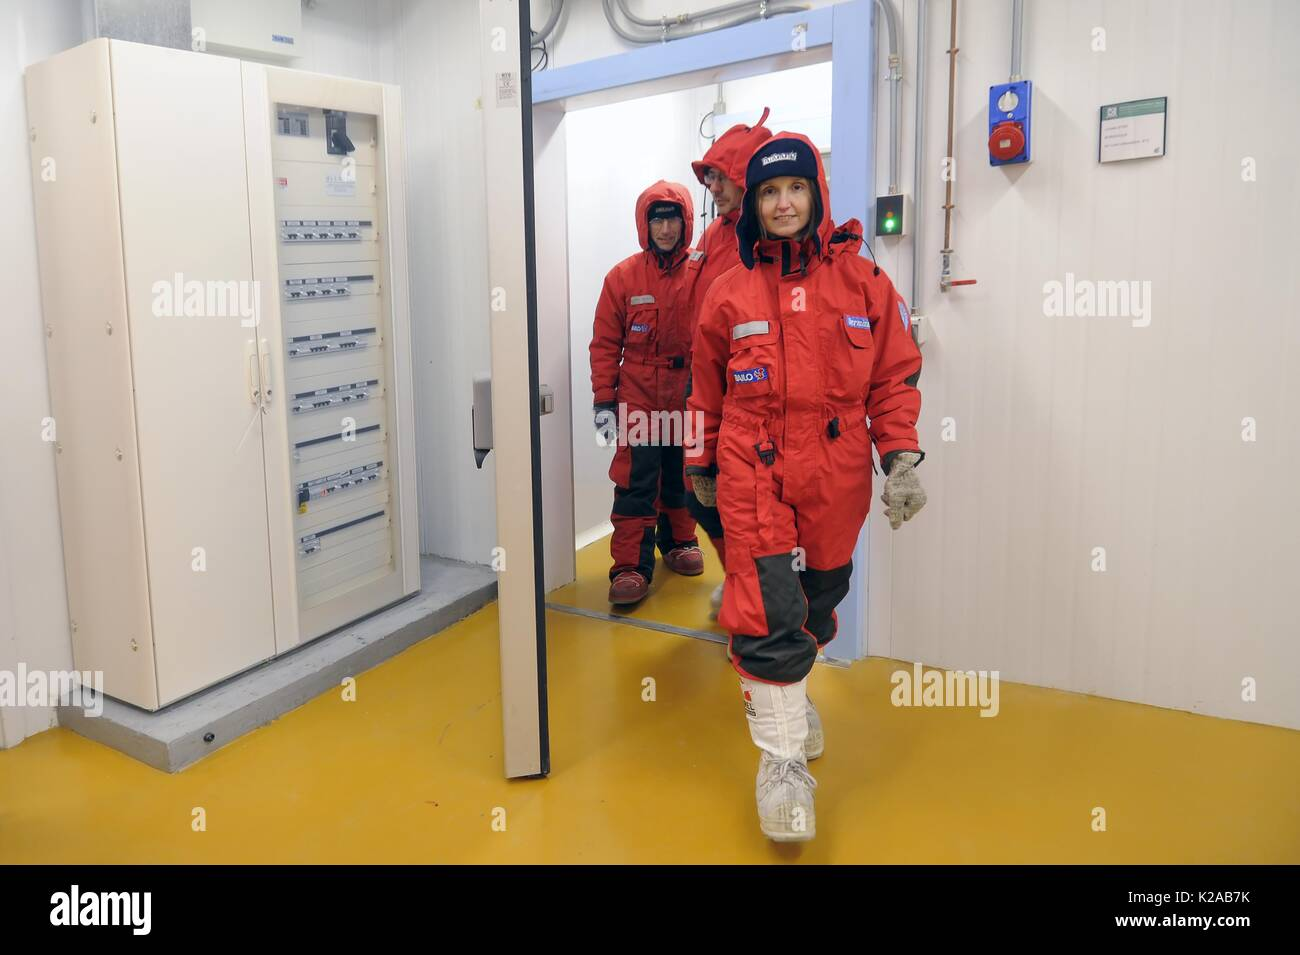 University of Milano Bicocca (Italy), EuroCold laboratory for the conservation and study of ice cores from Antarctica and glaciers, to allow studies on the global atmosphere and climate change - Stock Image